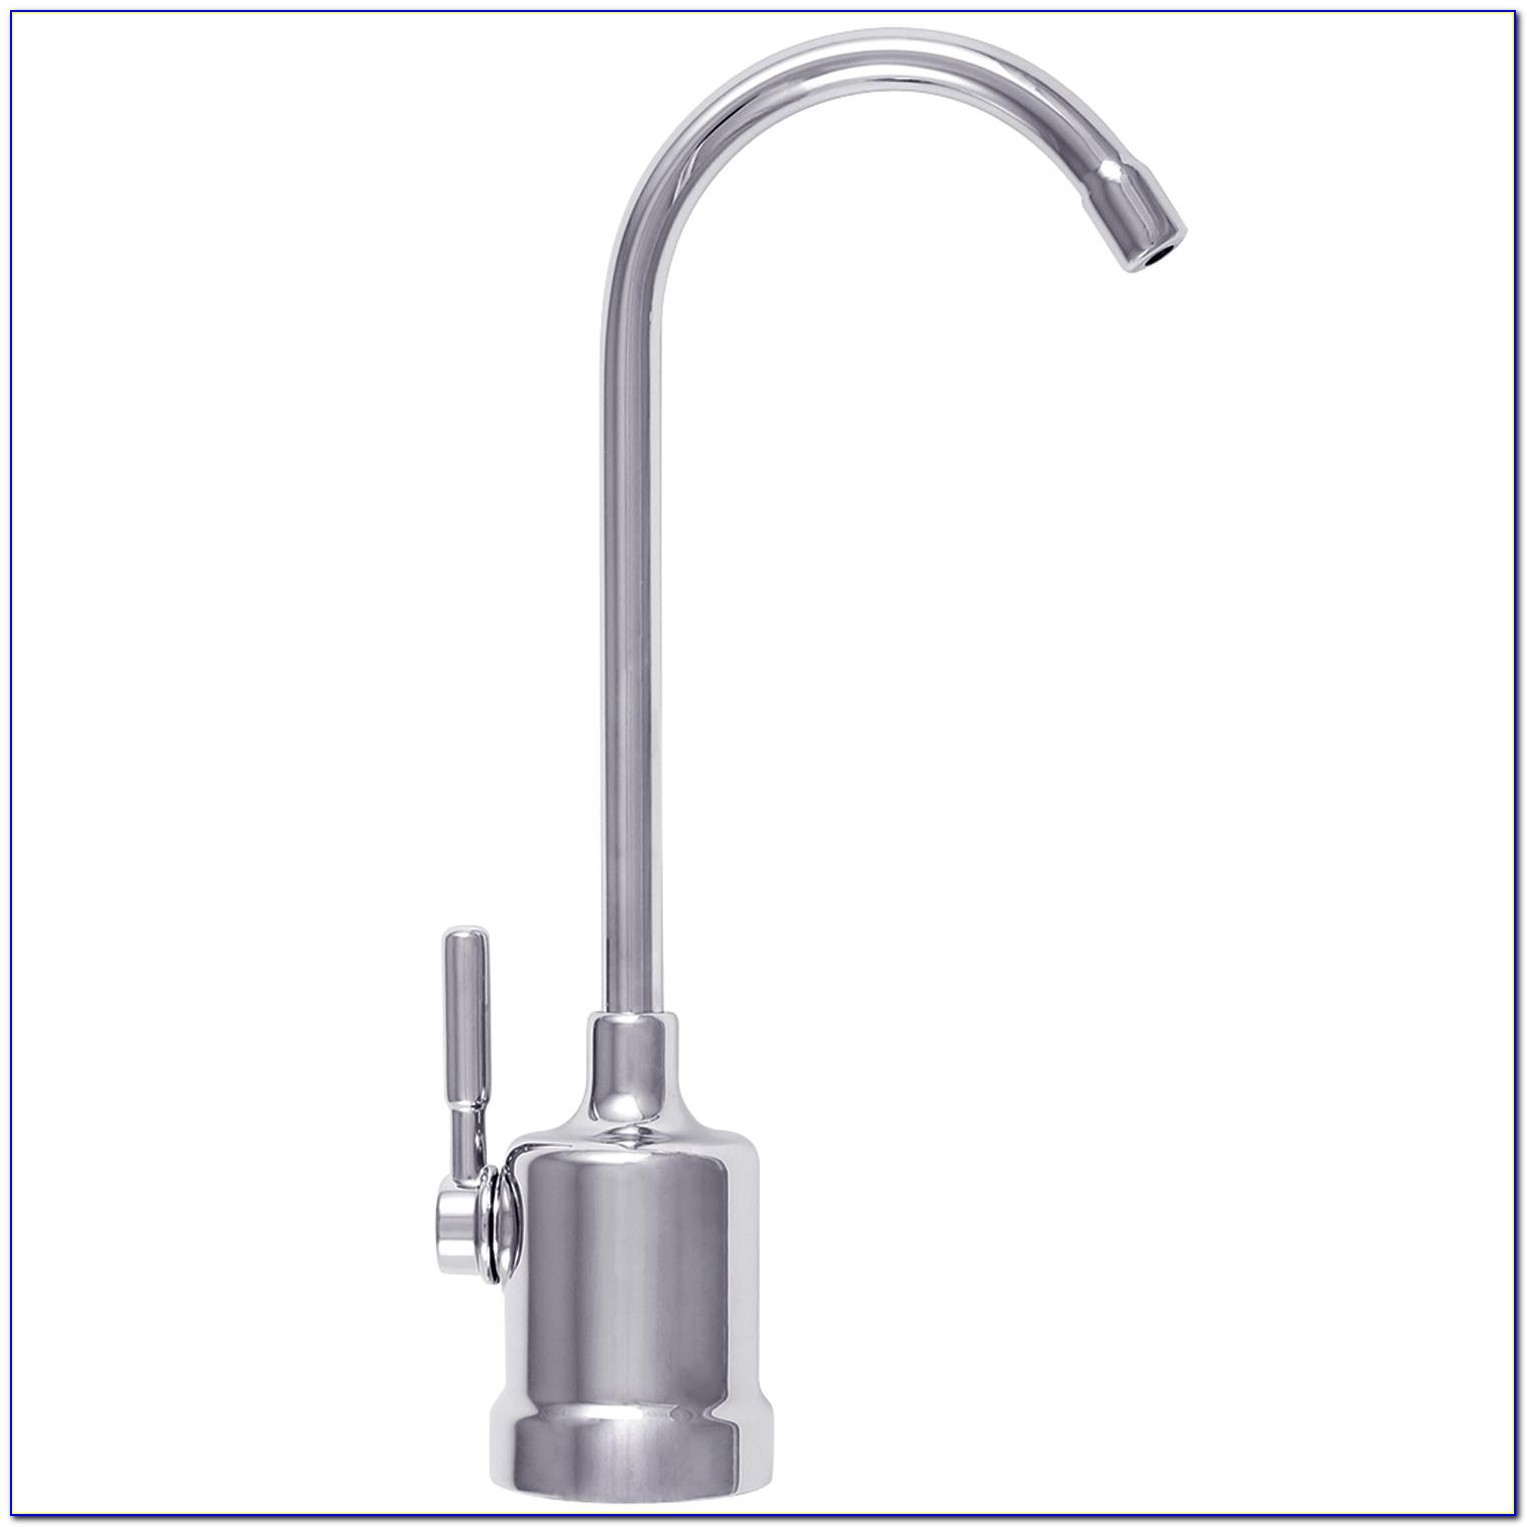 Reverse Osmosis Faucet With Dishwasher Air Gap Bathroom Ideas Within Measurements 1500 X 1500